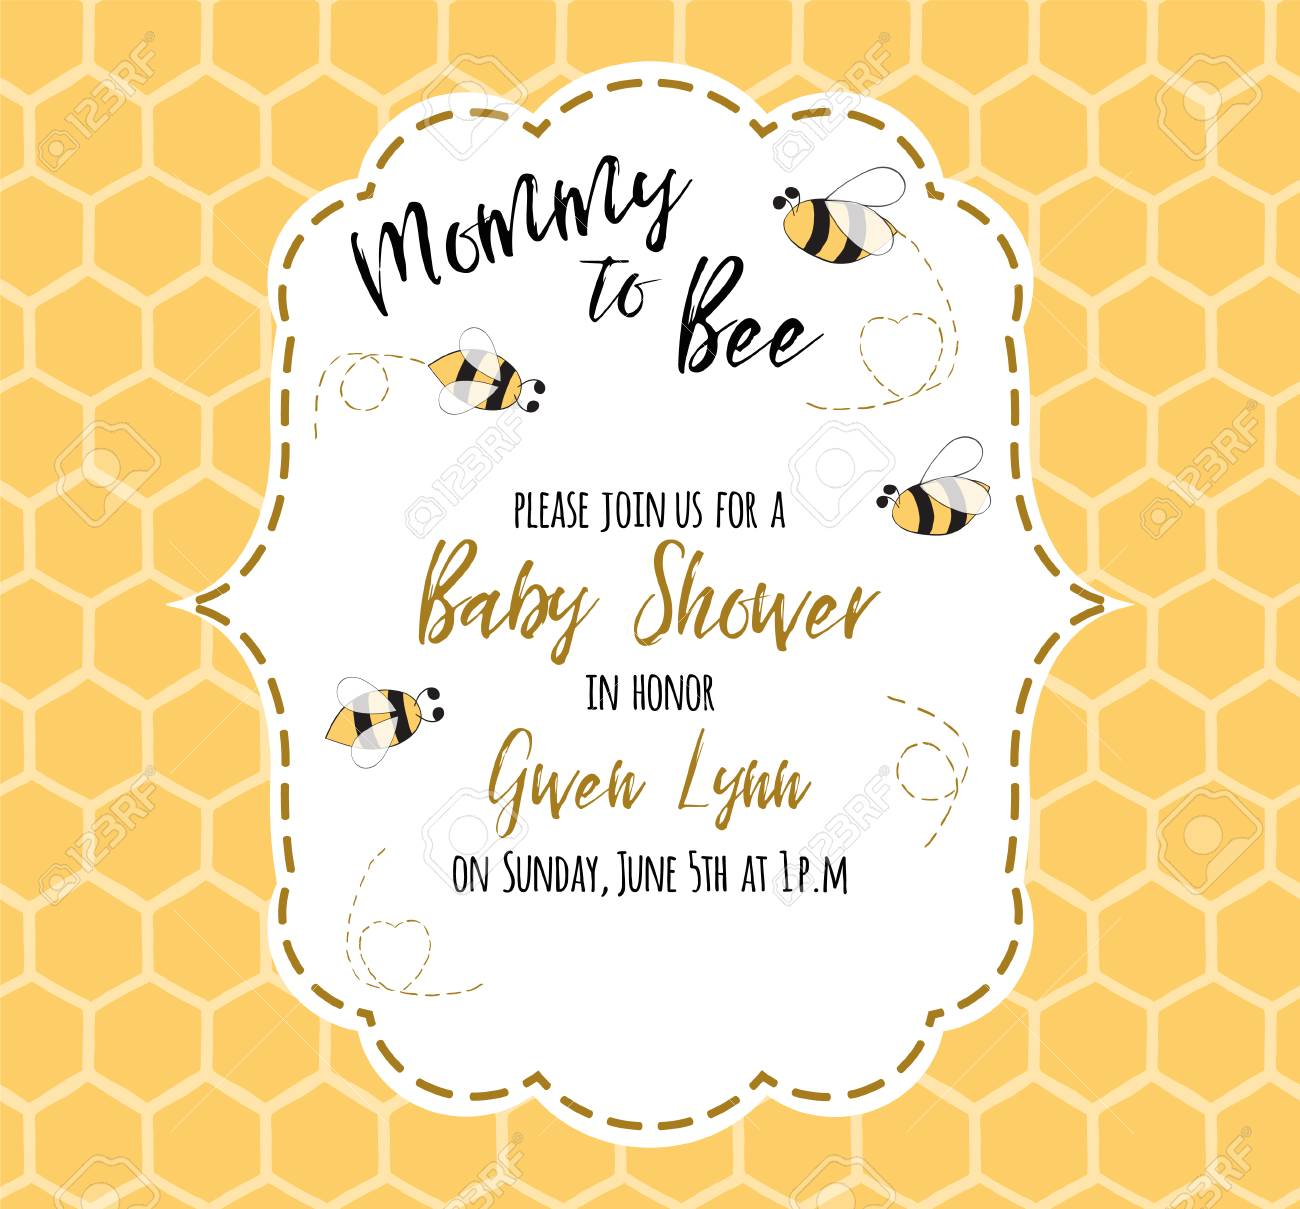 Baby Shower Invitation Template With Text Mommy To Bee, Honey ...